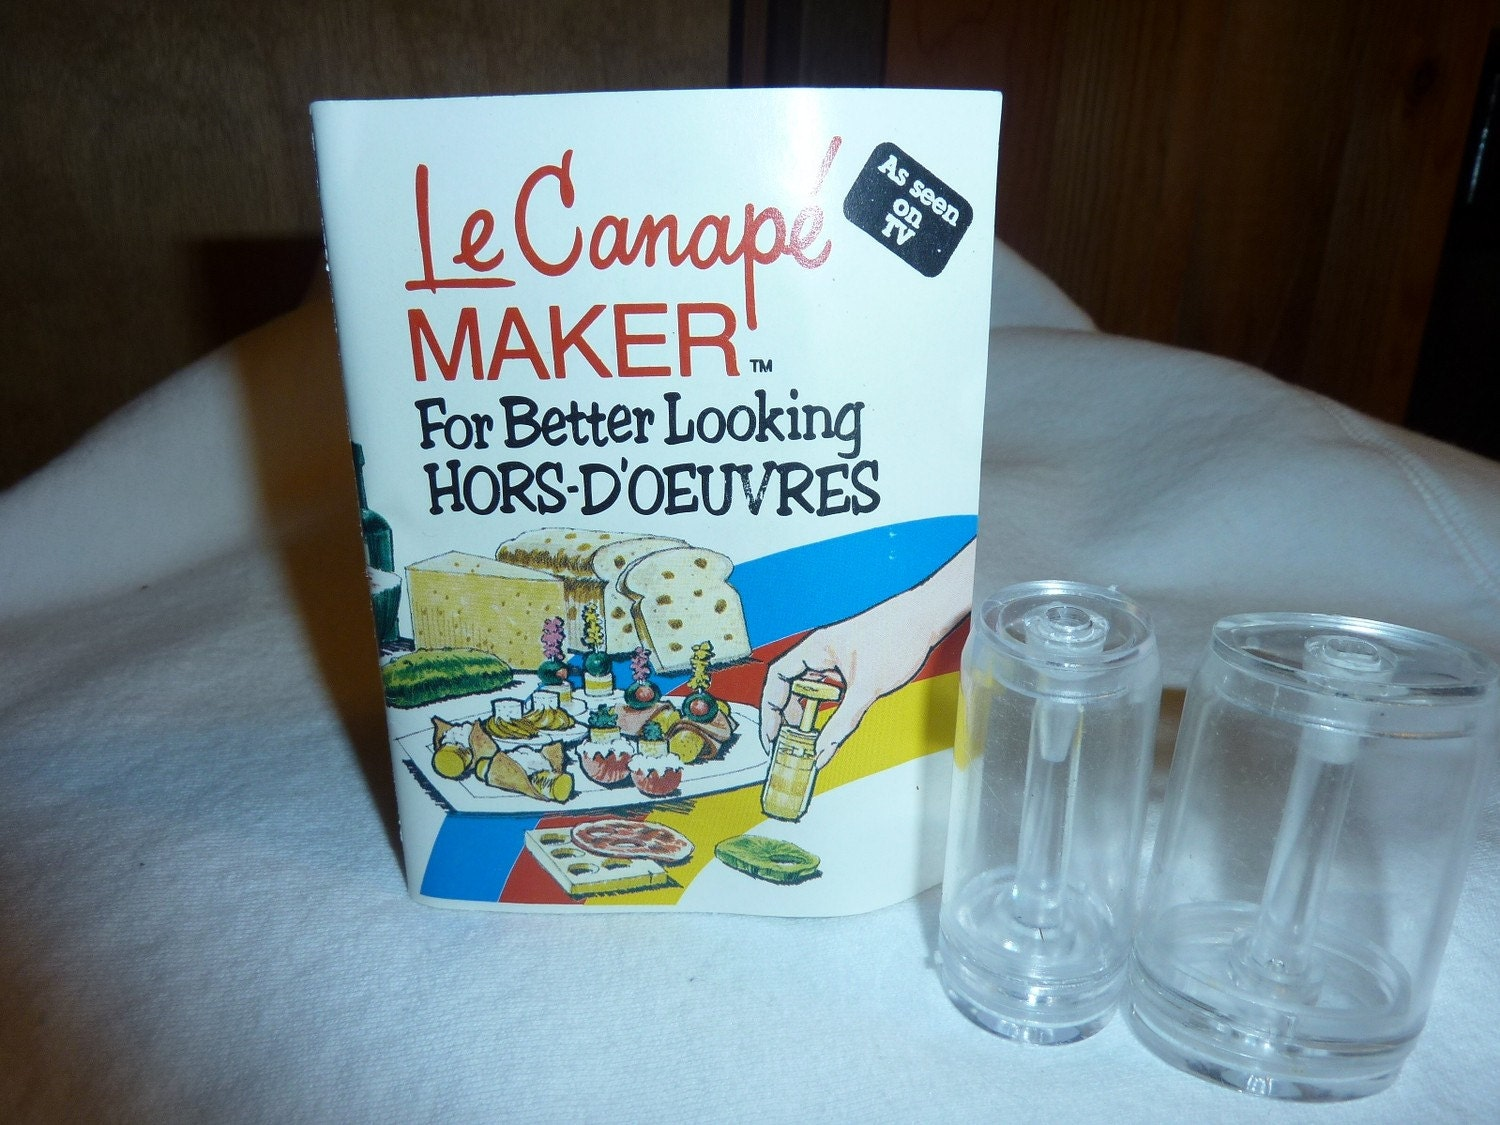 Le Canape Maker Of Le Canape Maker Vtg Canape Maker Set 1980s By Roselraty On